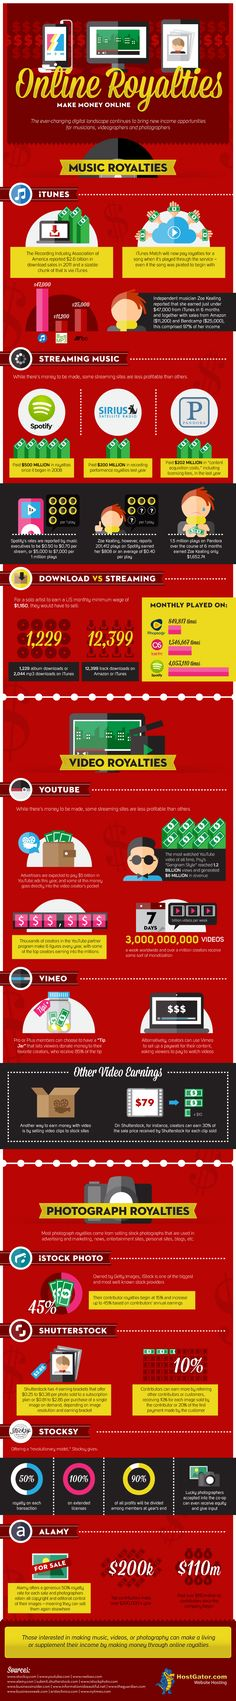 Infographic: Online Royalties, Make Money Online | HostGator Web Hosting Blog | Gator Crossing